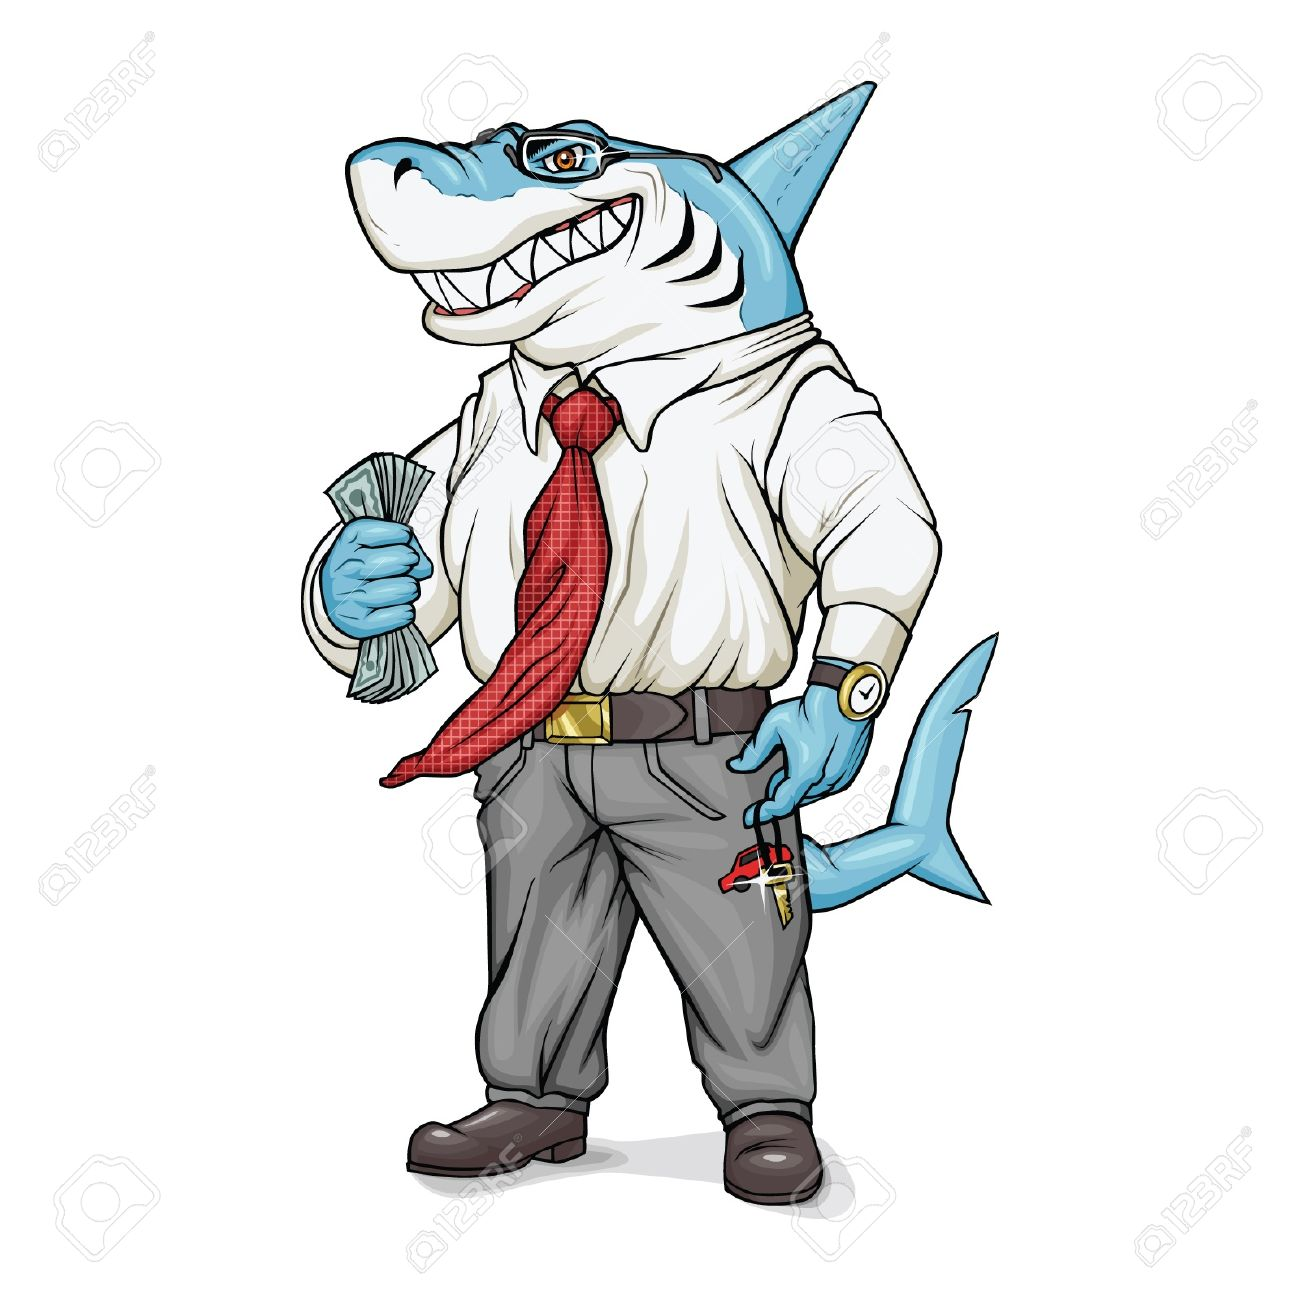 Shark-businessman is holding money and smiling. Stock Vector - 14209328